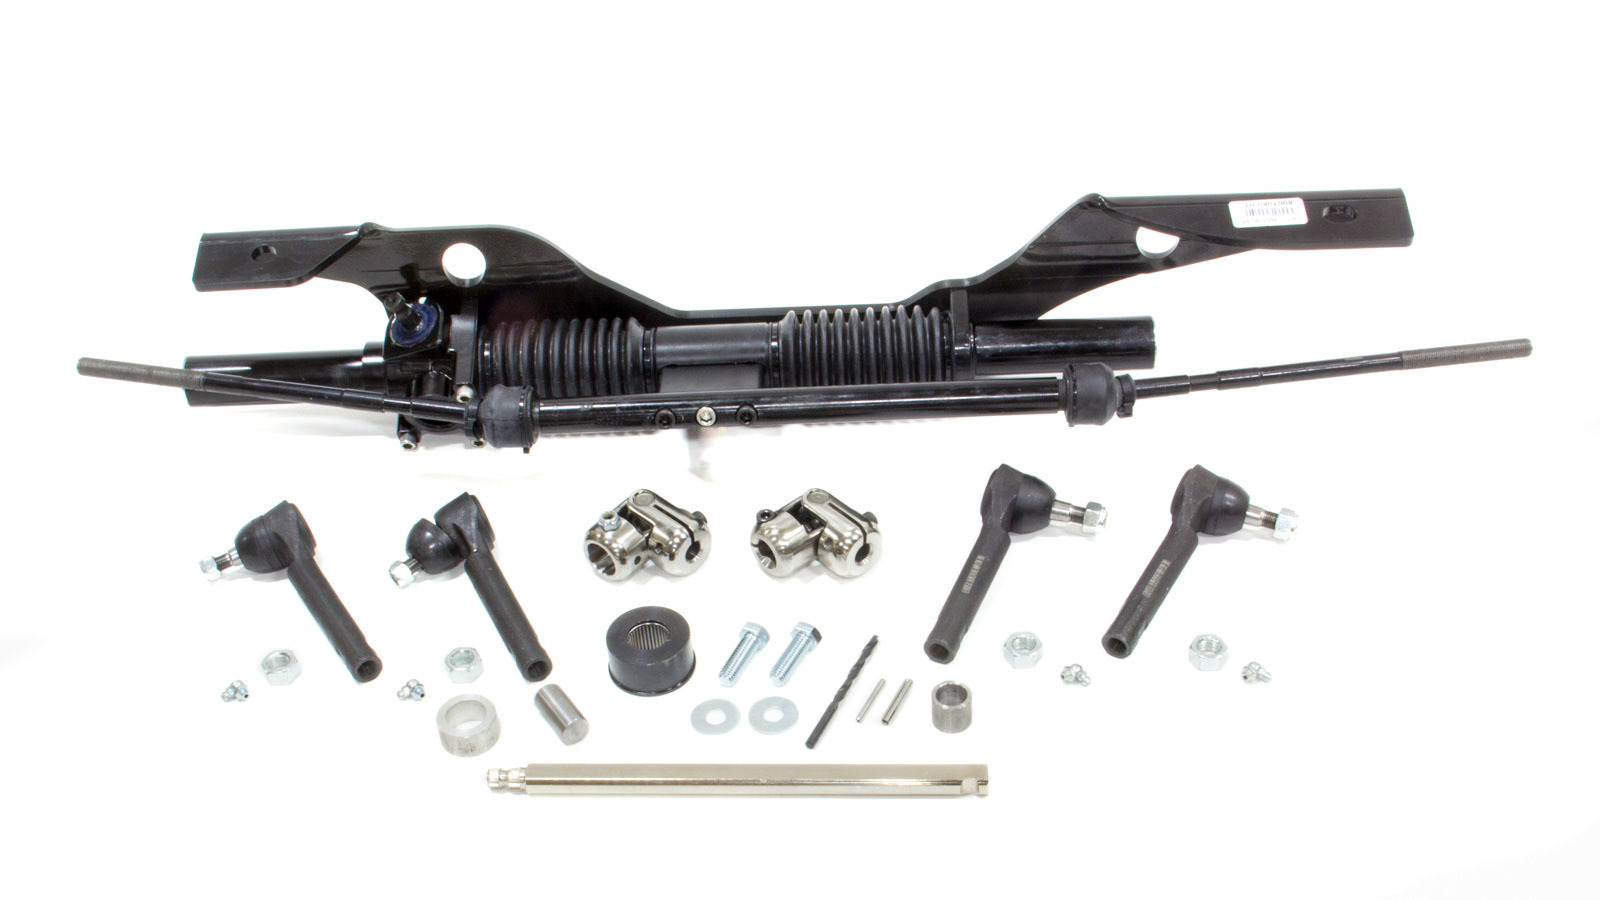 Unisteer Performance Products 8001090-01 Rack and Pinion, Manual, Aluminum, Black Powder Coat, Ford Mustang 1967-70, Kit